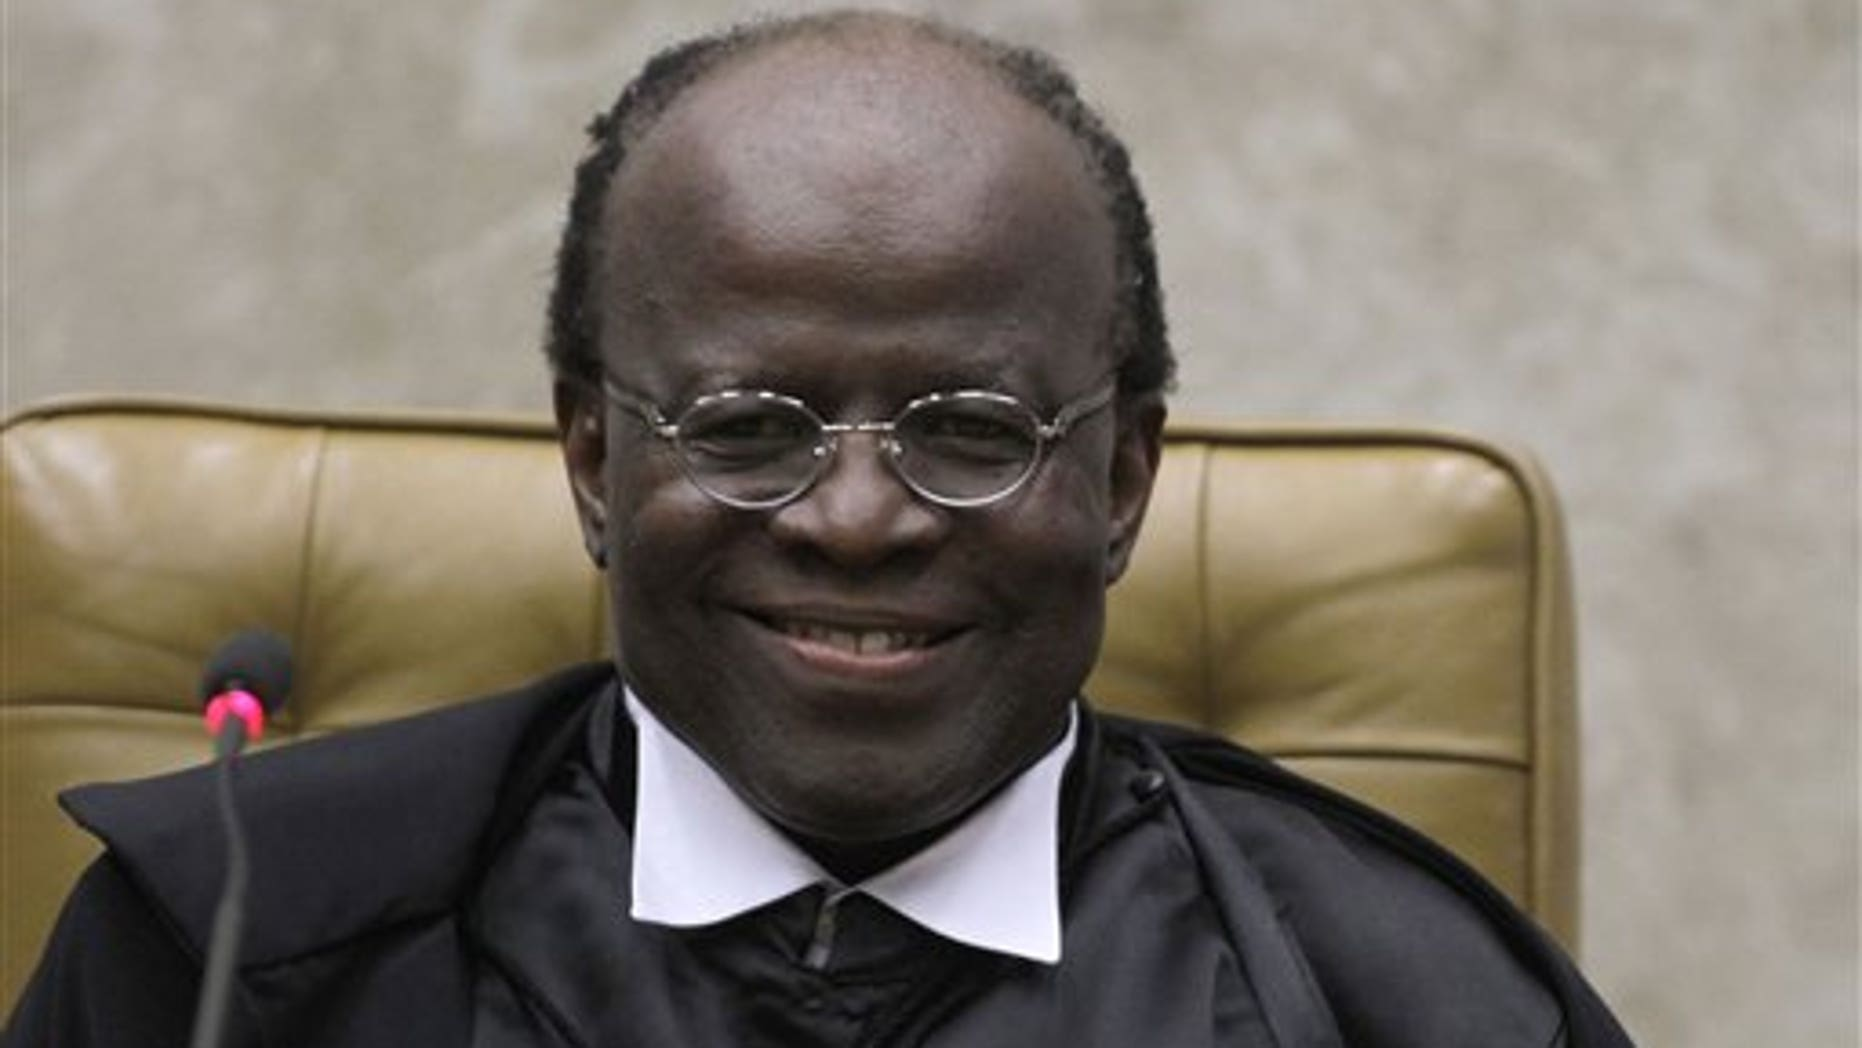 Joaquim Barbosa smiles during his inauguration ceremony at the Supreme Court in Brasilia, Brazil.